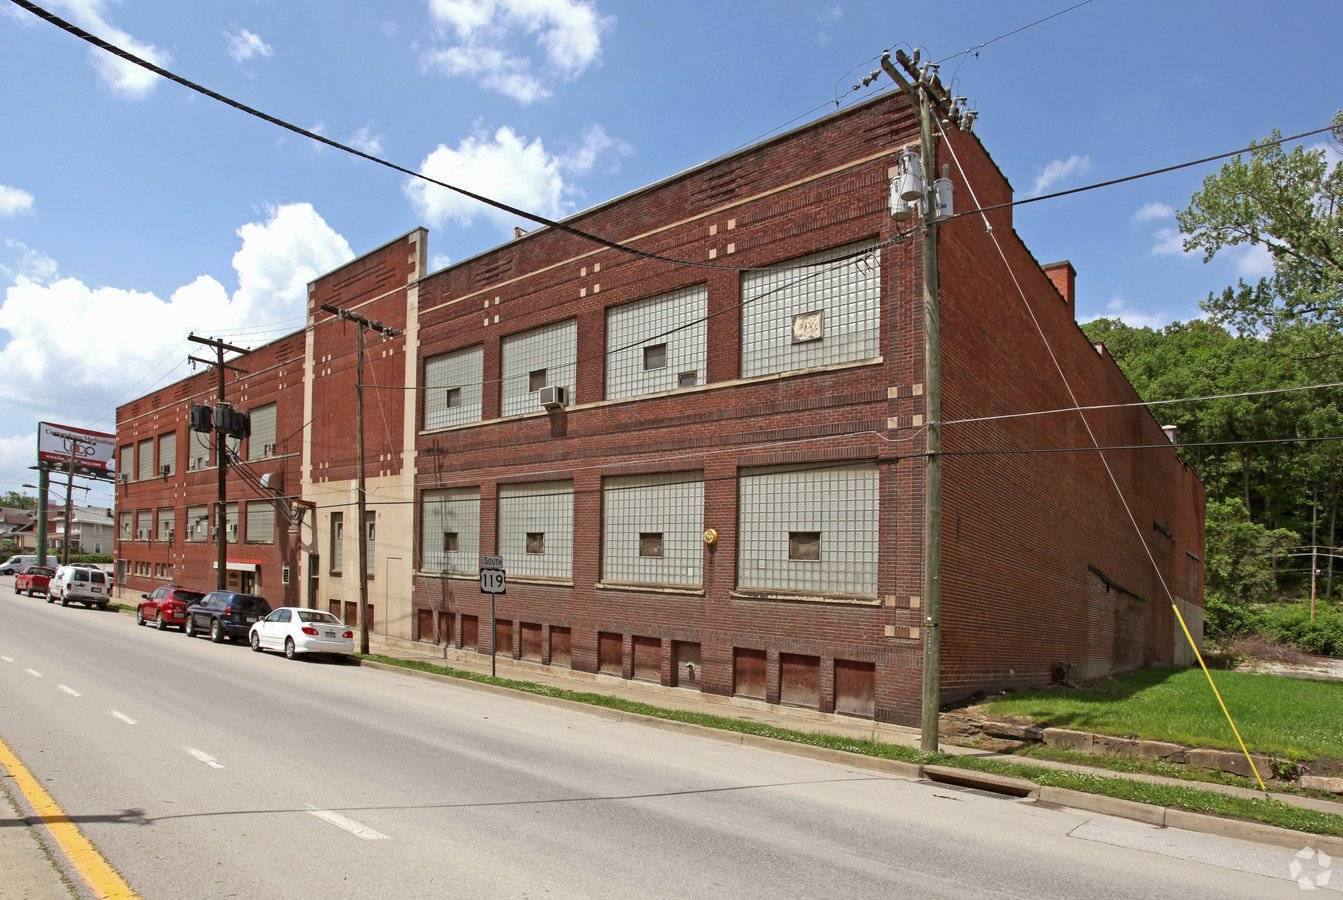 This is the current street view of the building today. The factory opened its doors in 1919 it was only an 1100 square foot building. Two other factories combined with the original occupied 138,000 square feet. Photo courtesy of loopnet.com